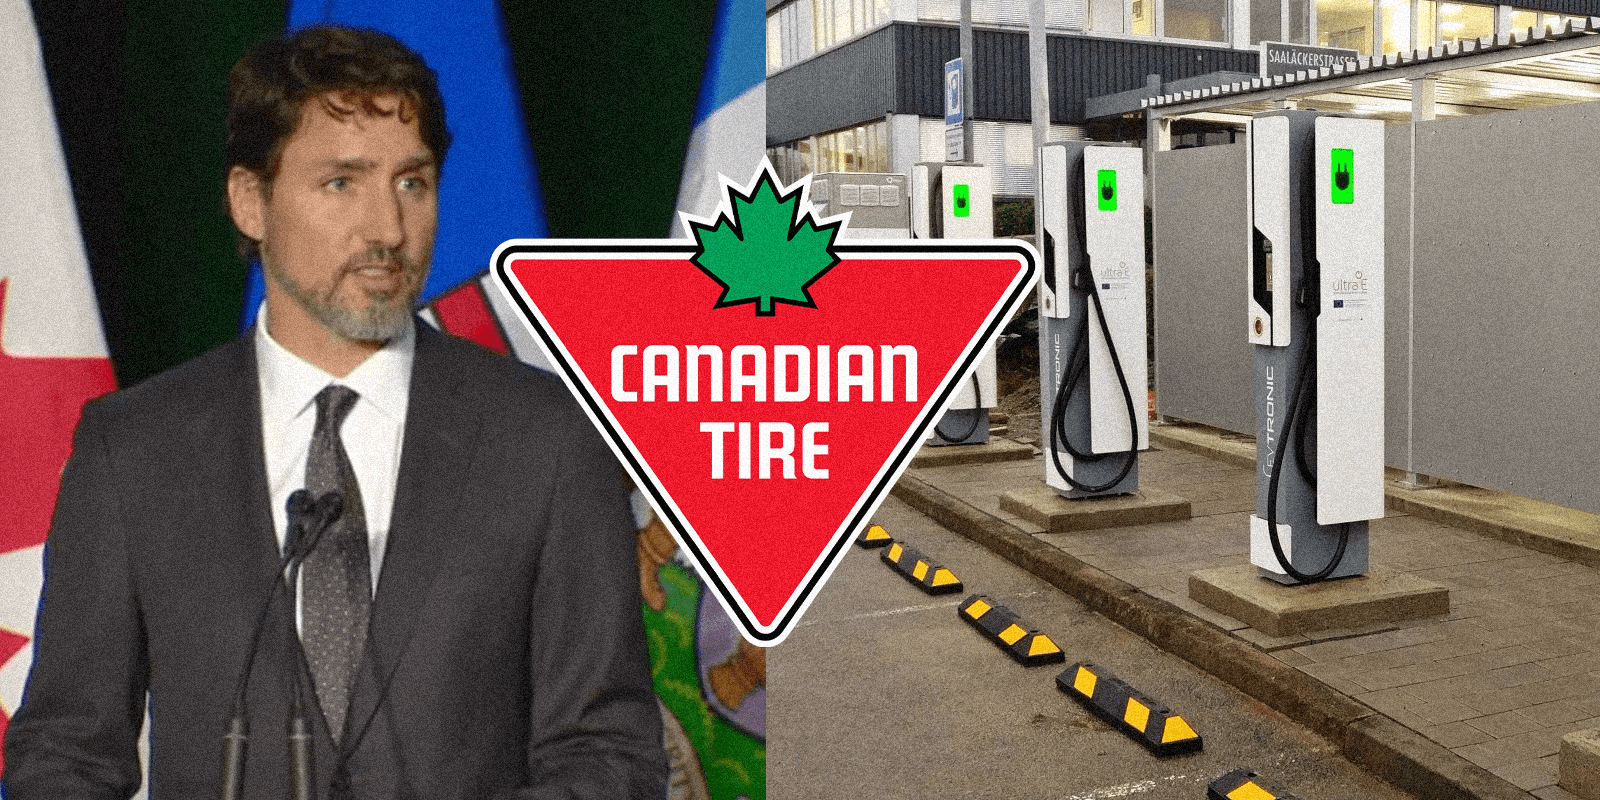 Trudeau gives Canadian Tire $2.7 million for electric car charging stations